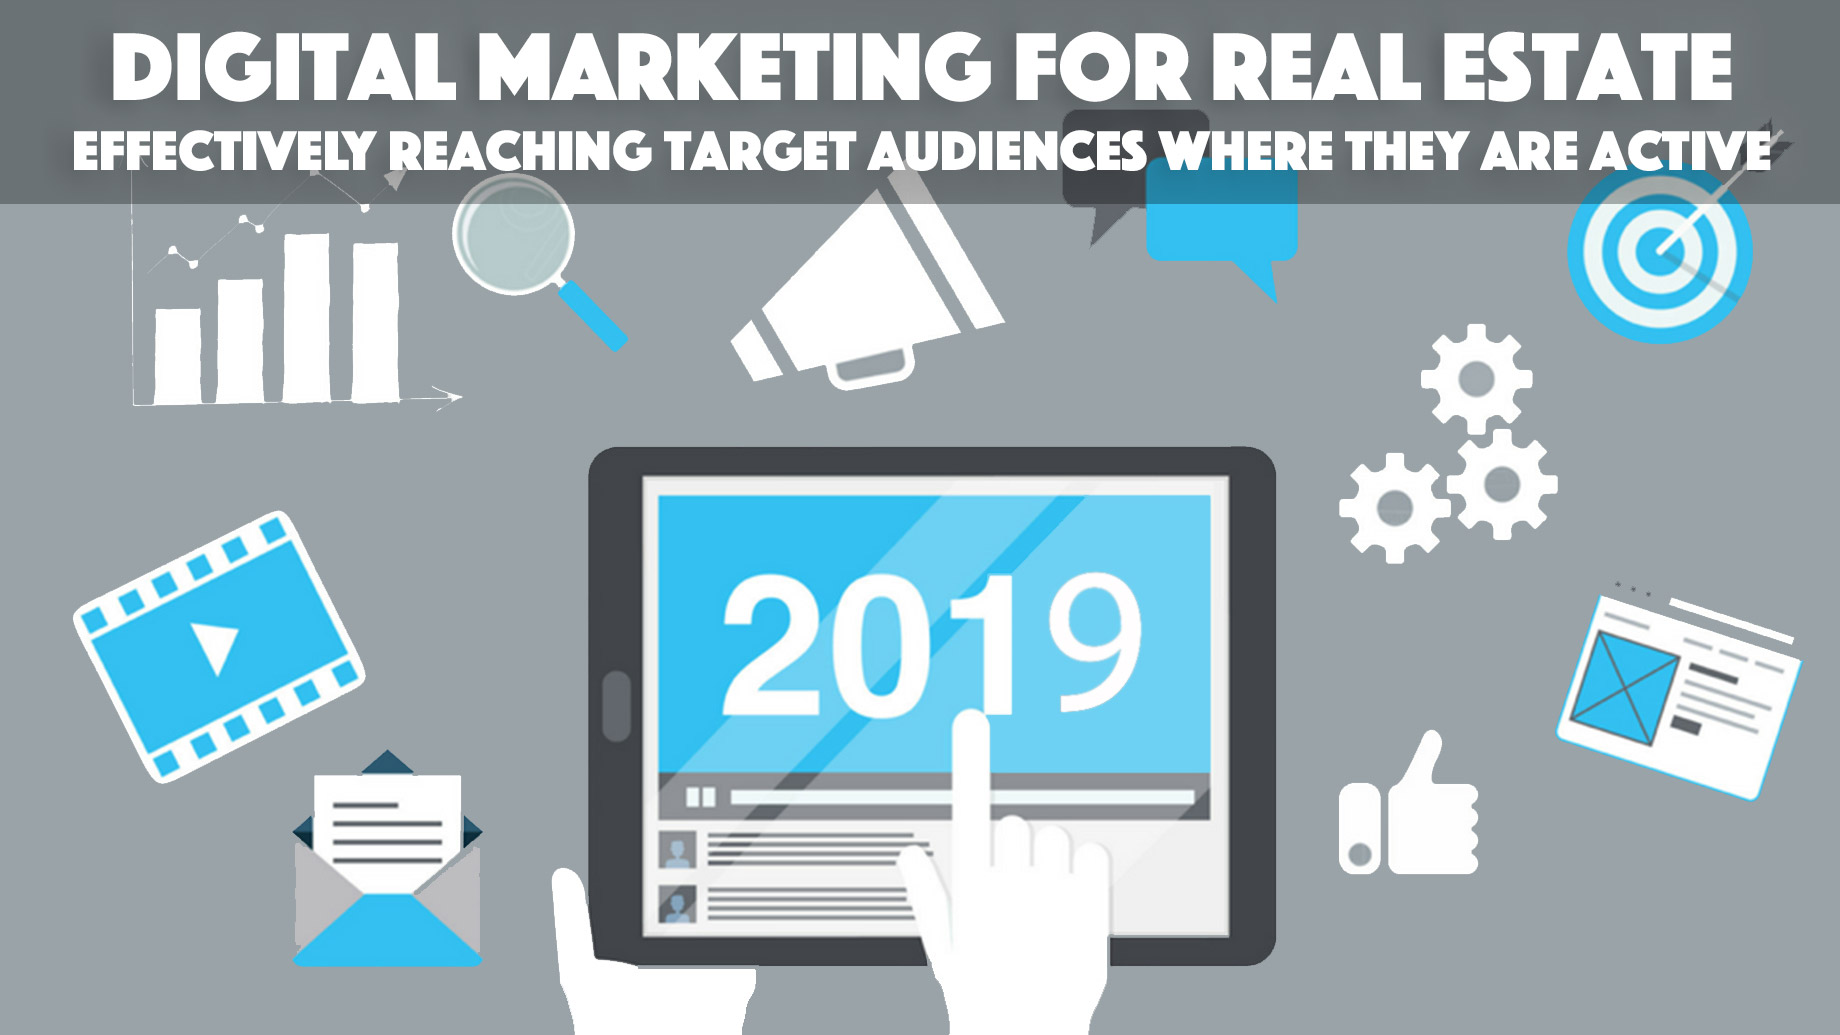 Digital Marketing for Real Estate - Effectively Reaching Target Audiences Where They are Active